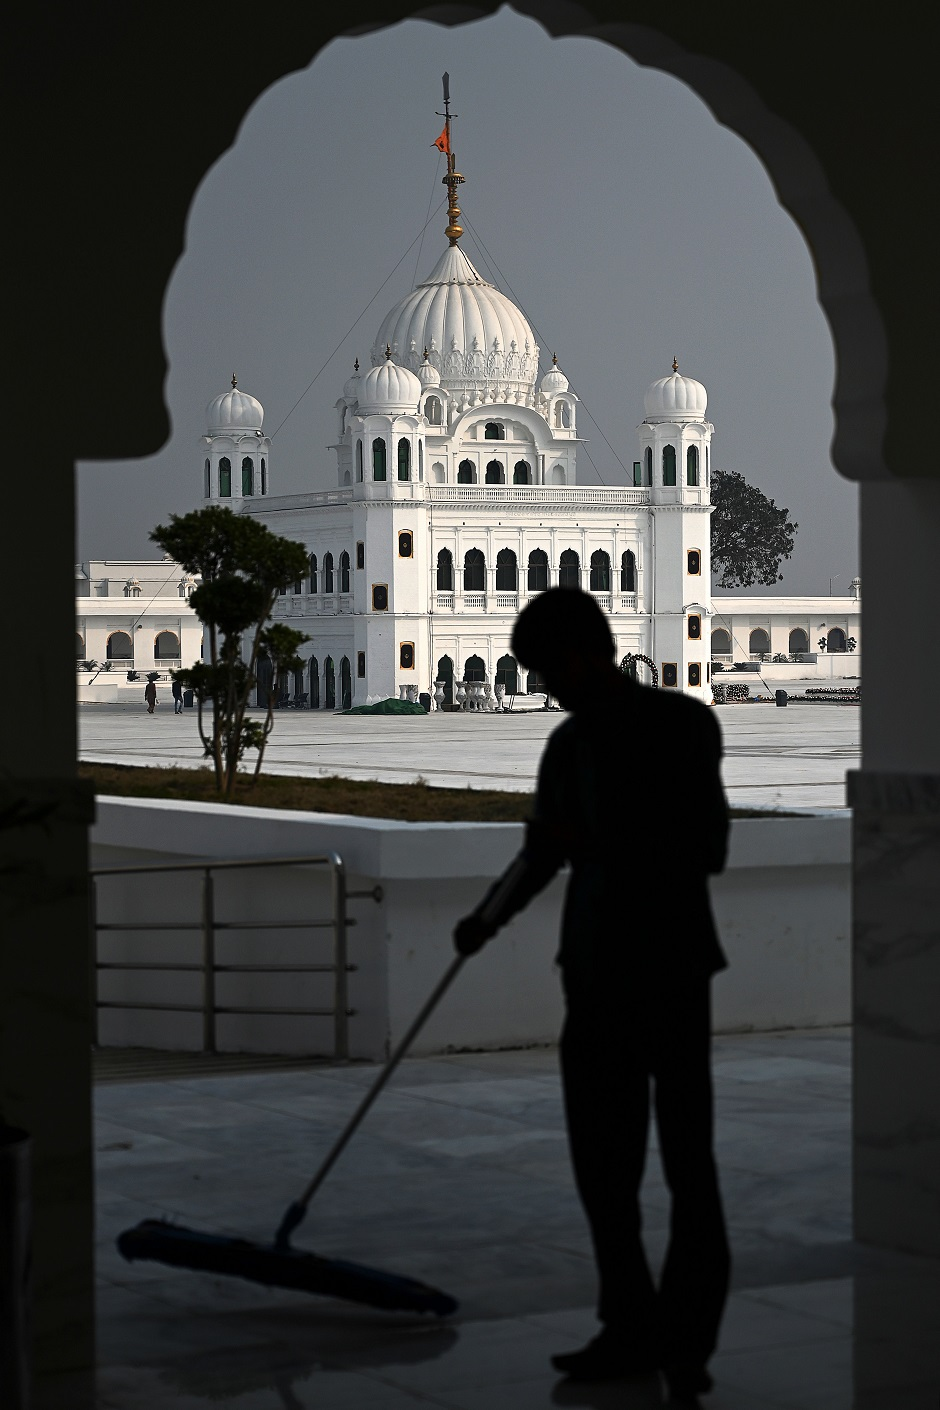 in pictures pakistan readies gurdwara darbar sahib for sikh pilgrims